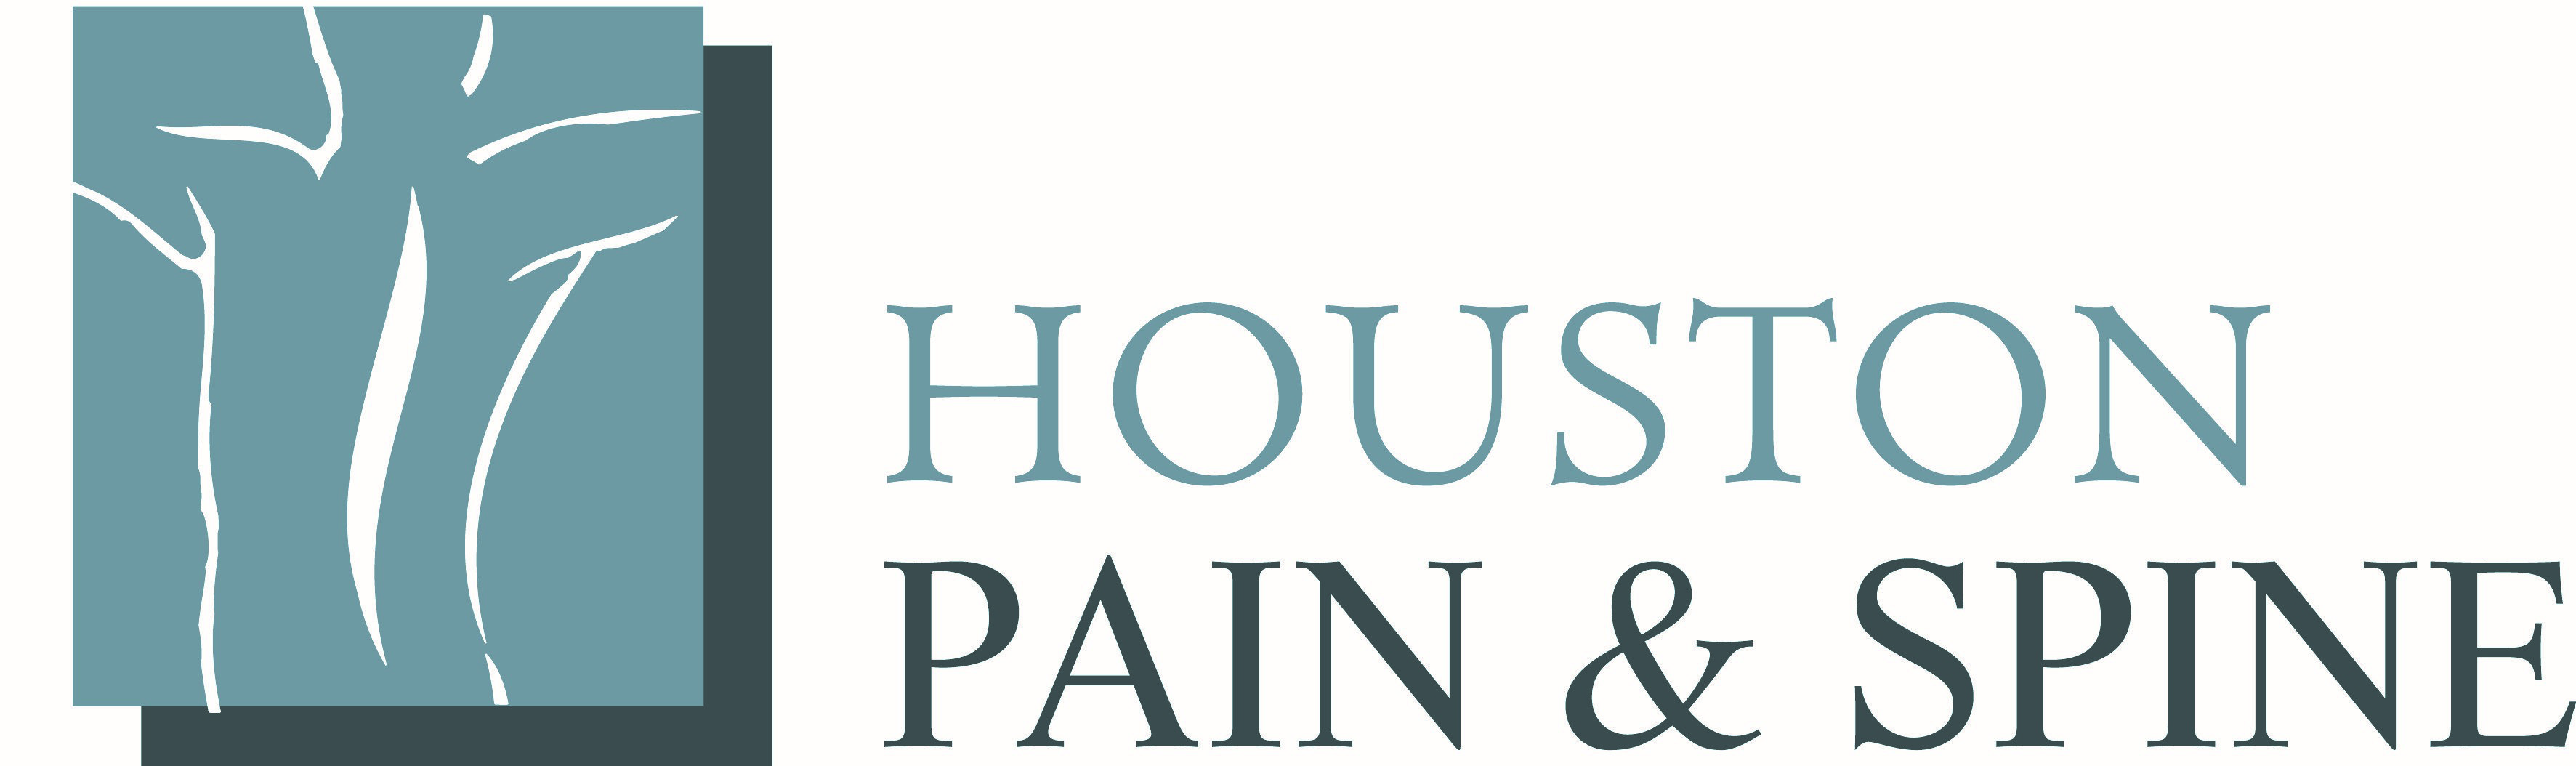 houston-pain-spine Logo